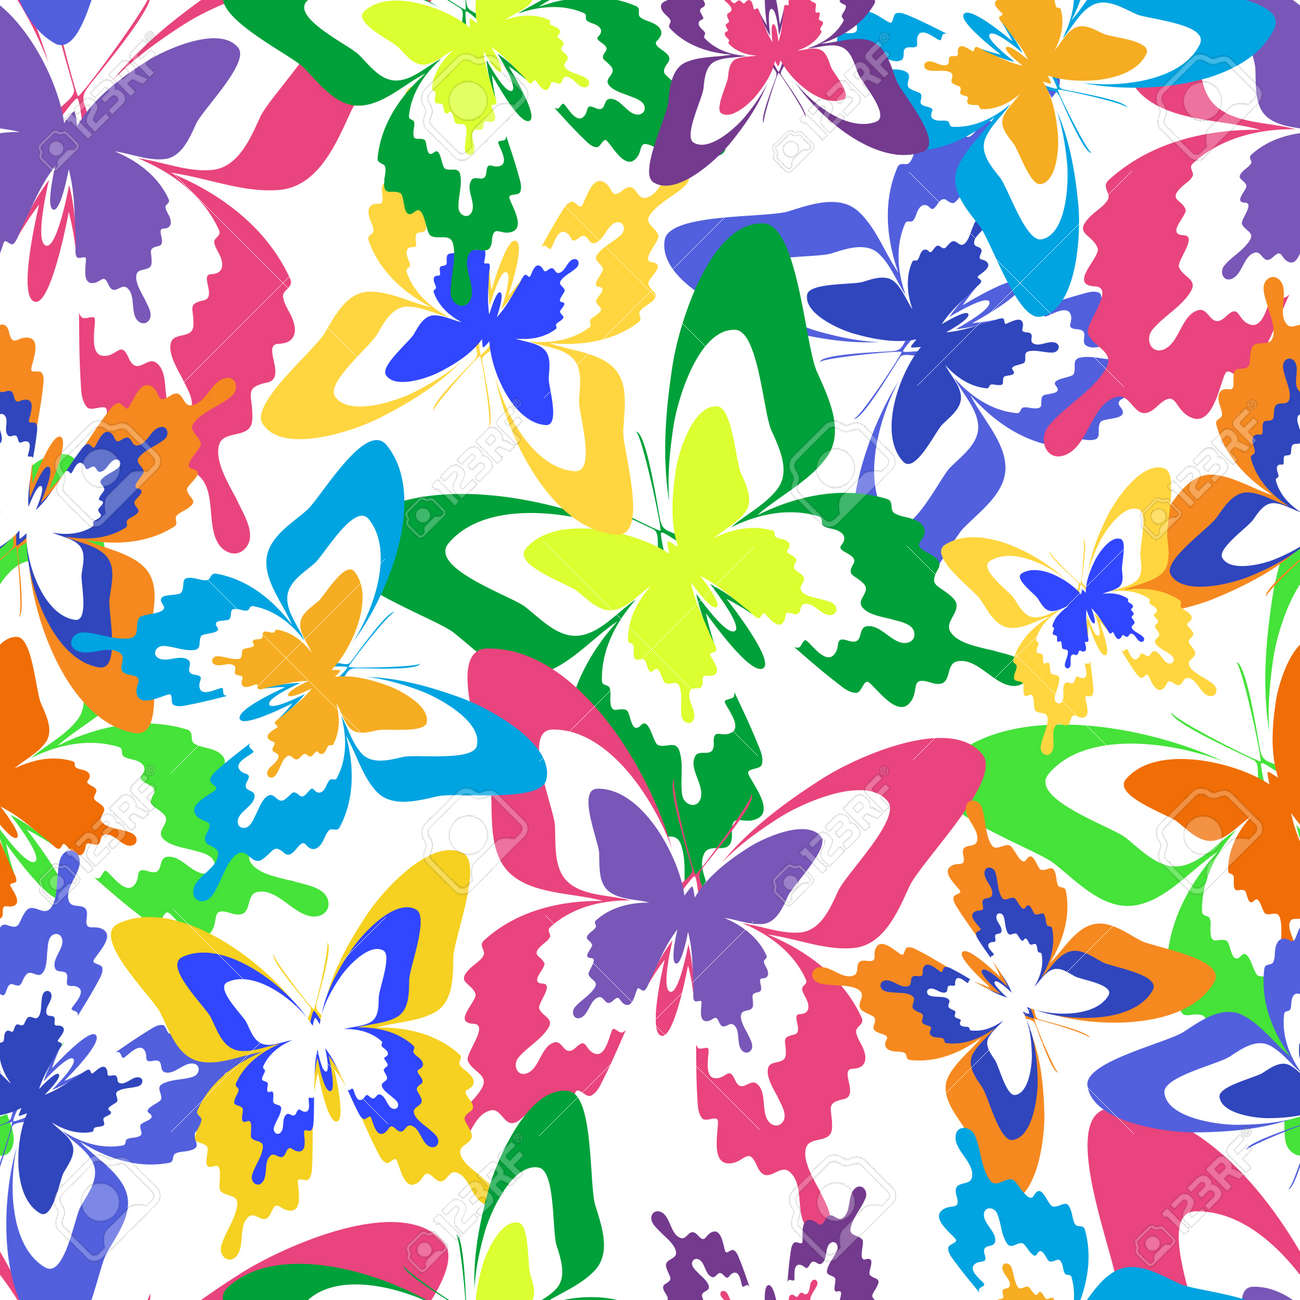 Beautiful Background Seamless Pattern With Flying Colorful Butterflies Over  White. Bright Stylish Trendy Wallpaper.